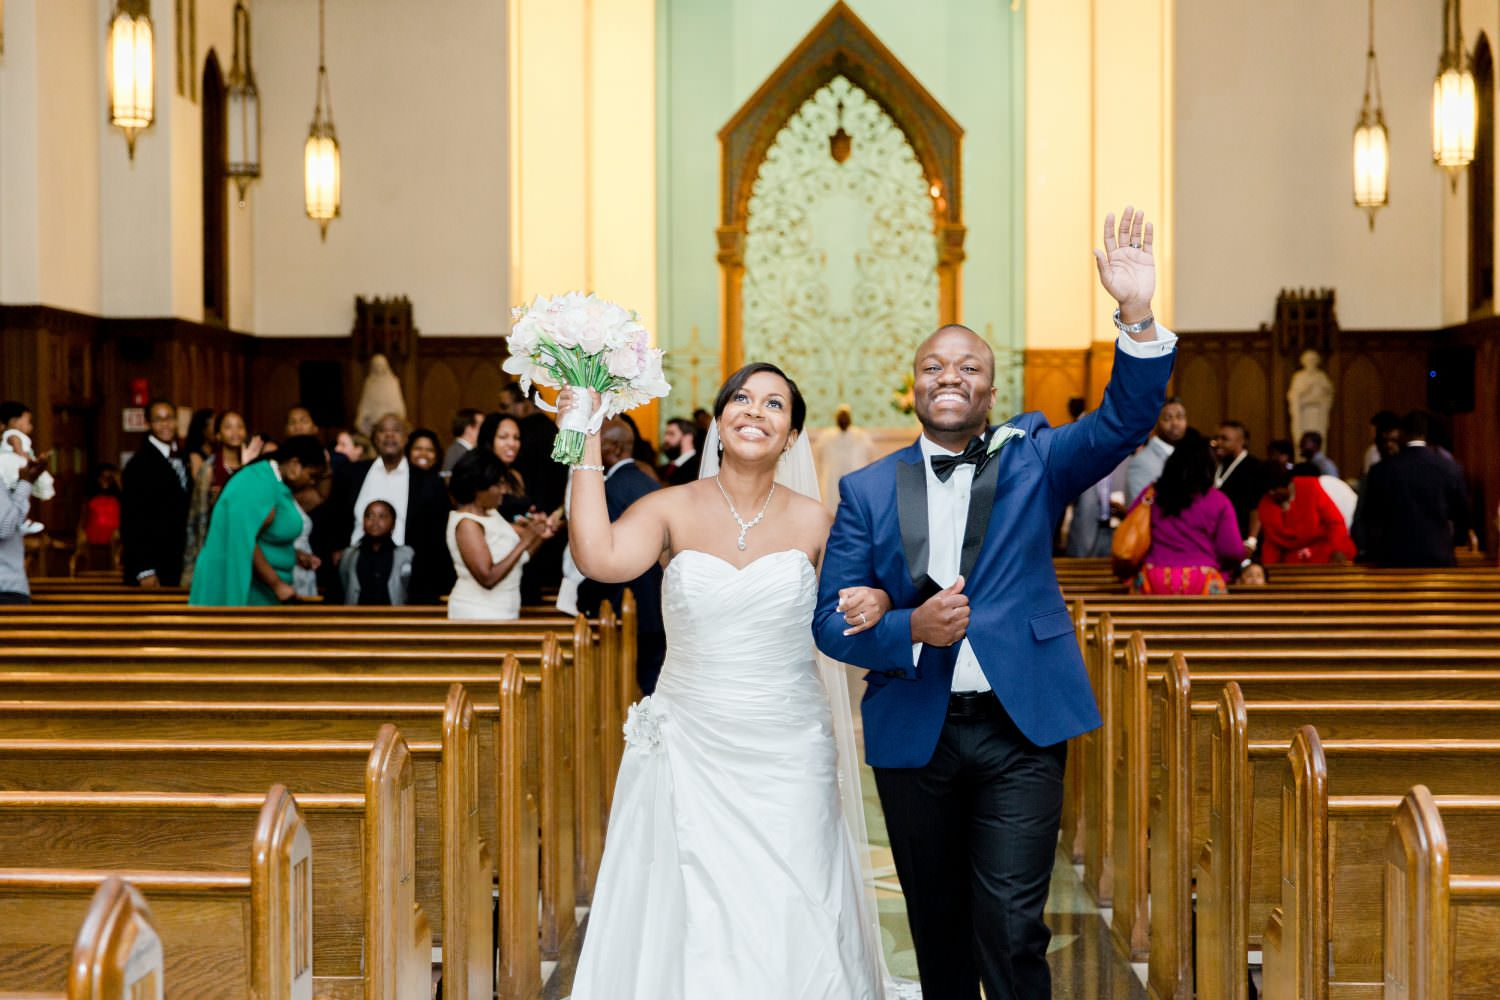 Bride and Groom at Ceremony Recessional at Dunbarton Chapel. Howerton+Wooten Events.